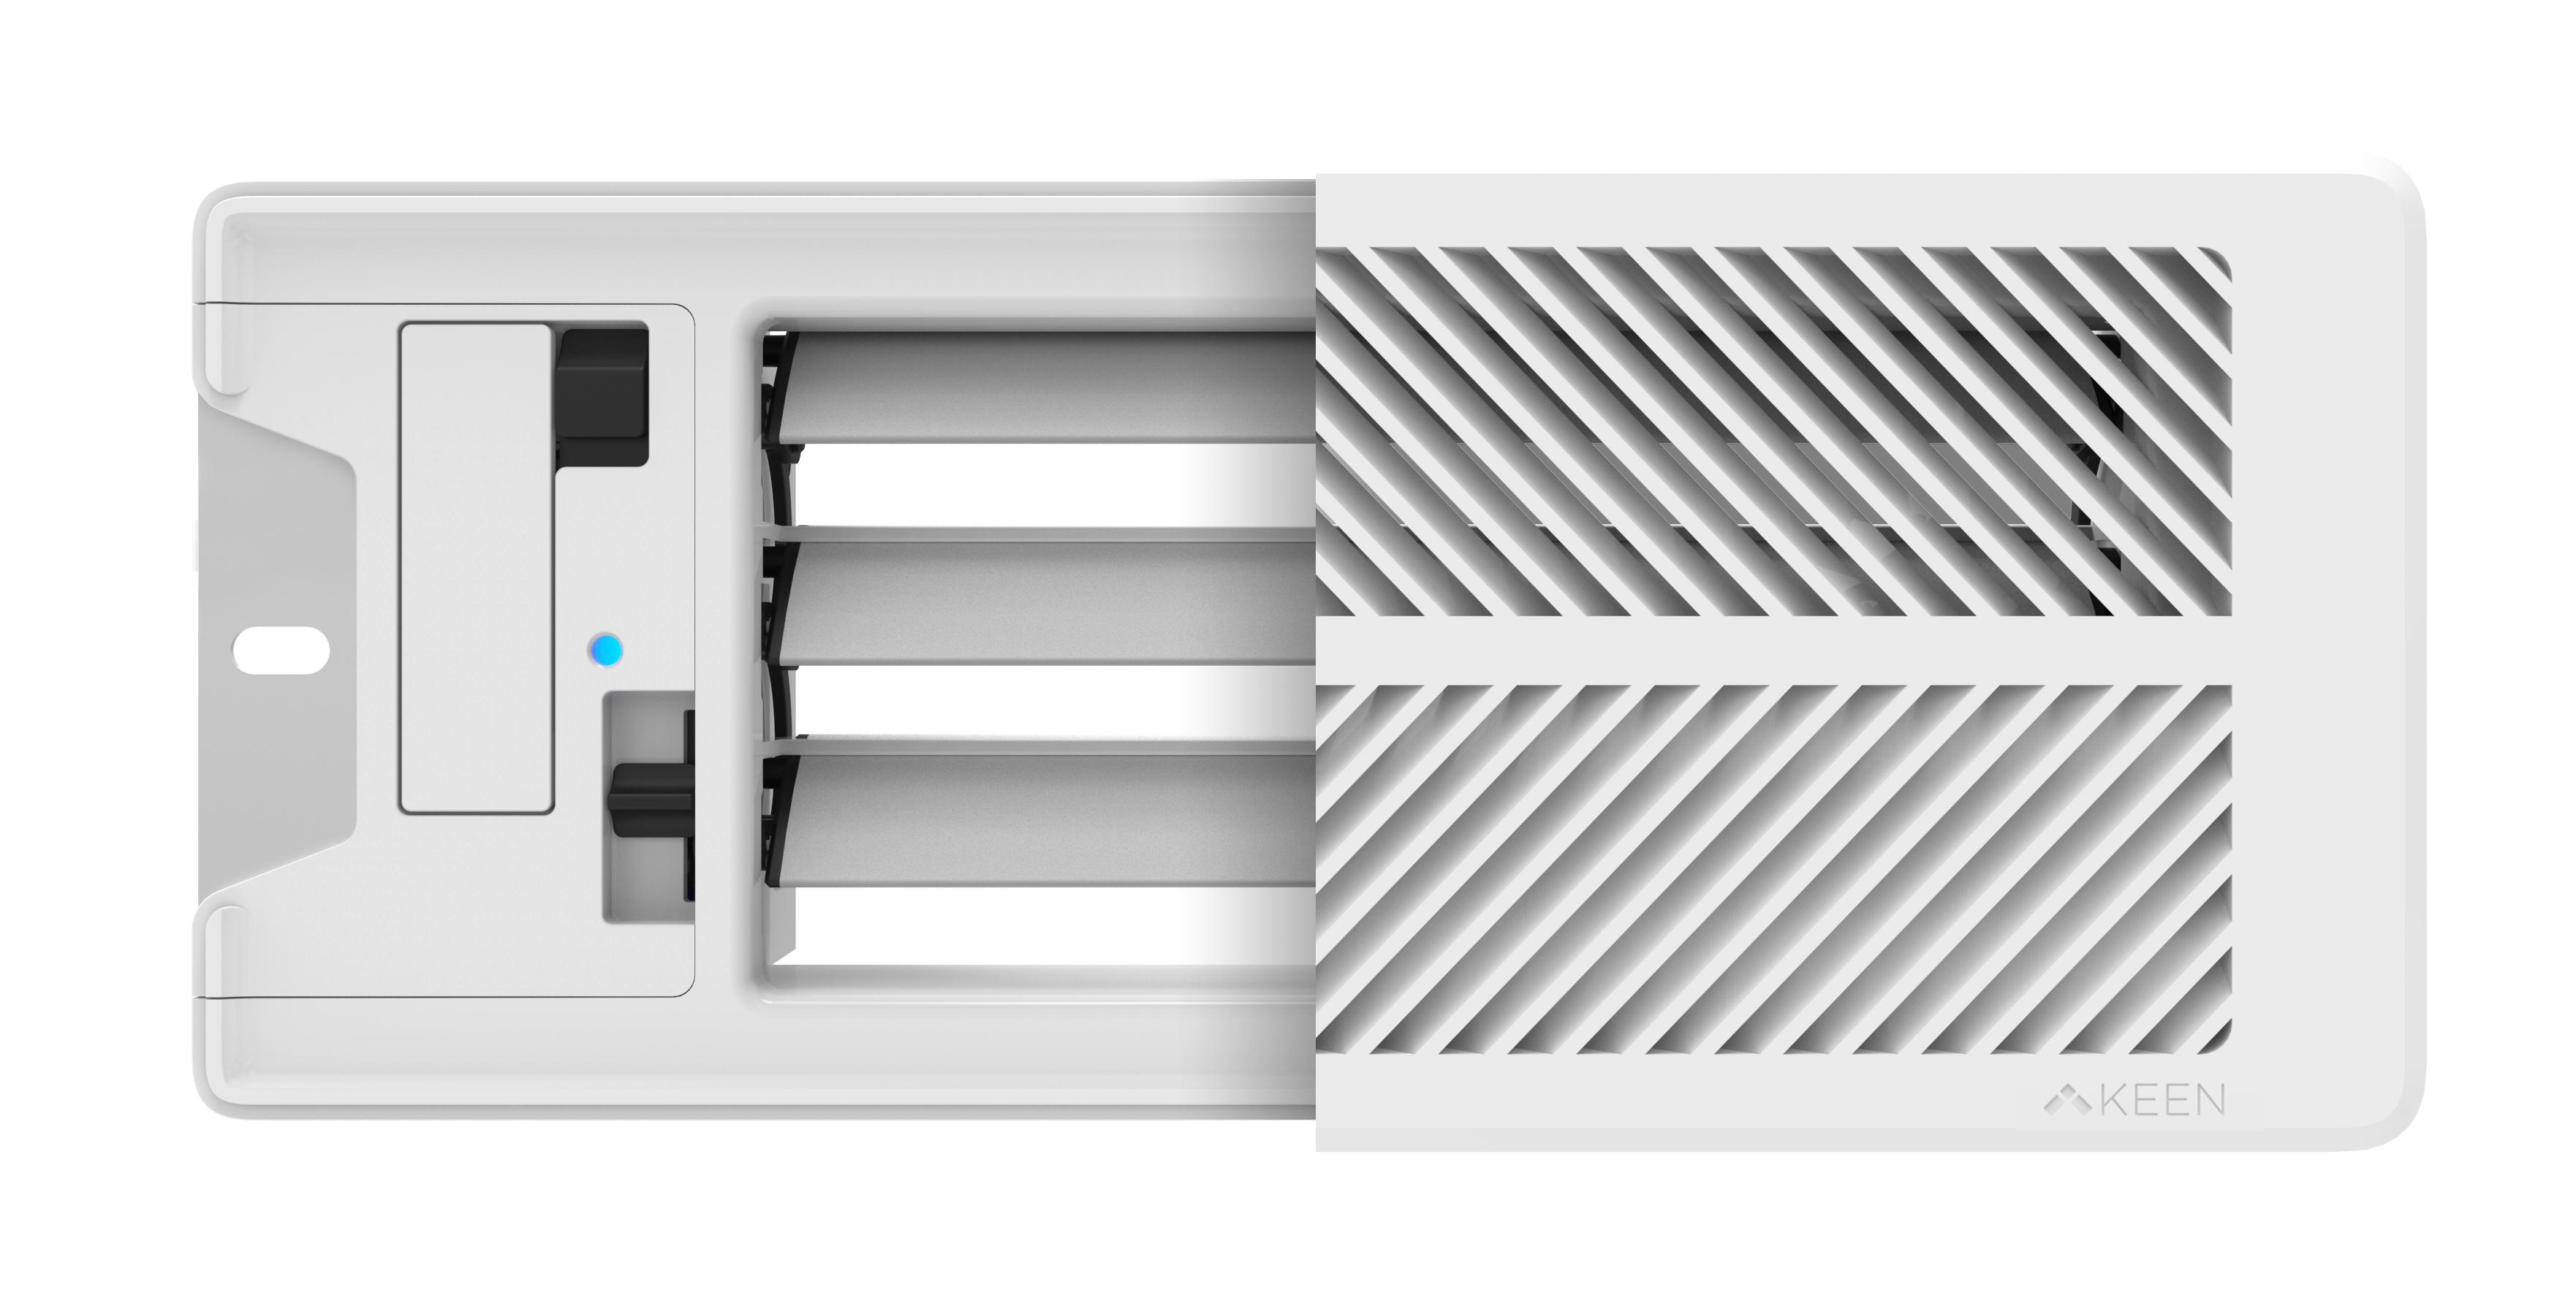 Front view of the Keen Home Smart Vent with half showing the faceplate